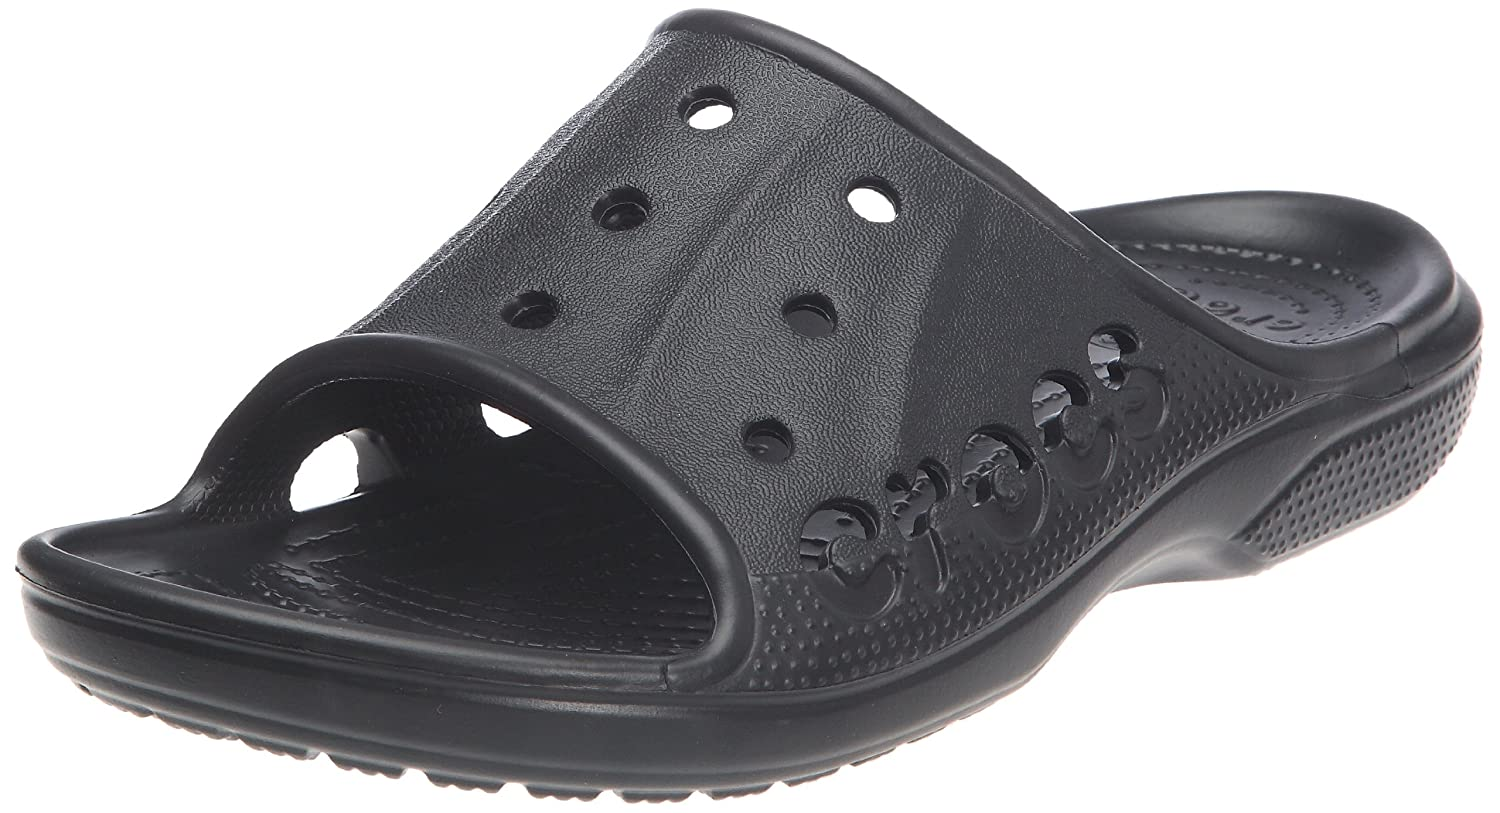 Fanning mens sandals are REEF's best-selling flip flops for men with a church key bottle opener built into the rubber outsole. These are the water-friendly mens sandals of legendary three-time world champ and perennial pro surfing powerhouse Mick Fanning.